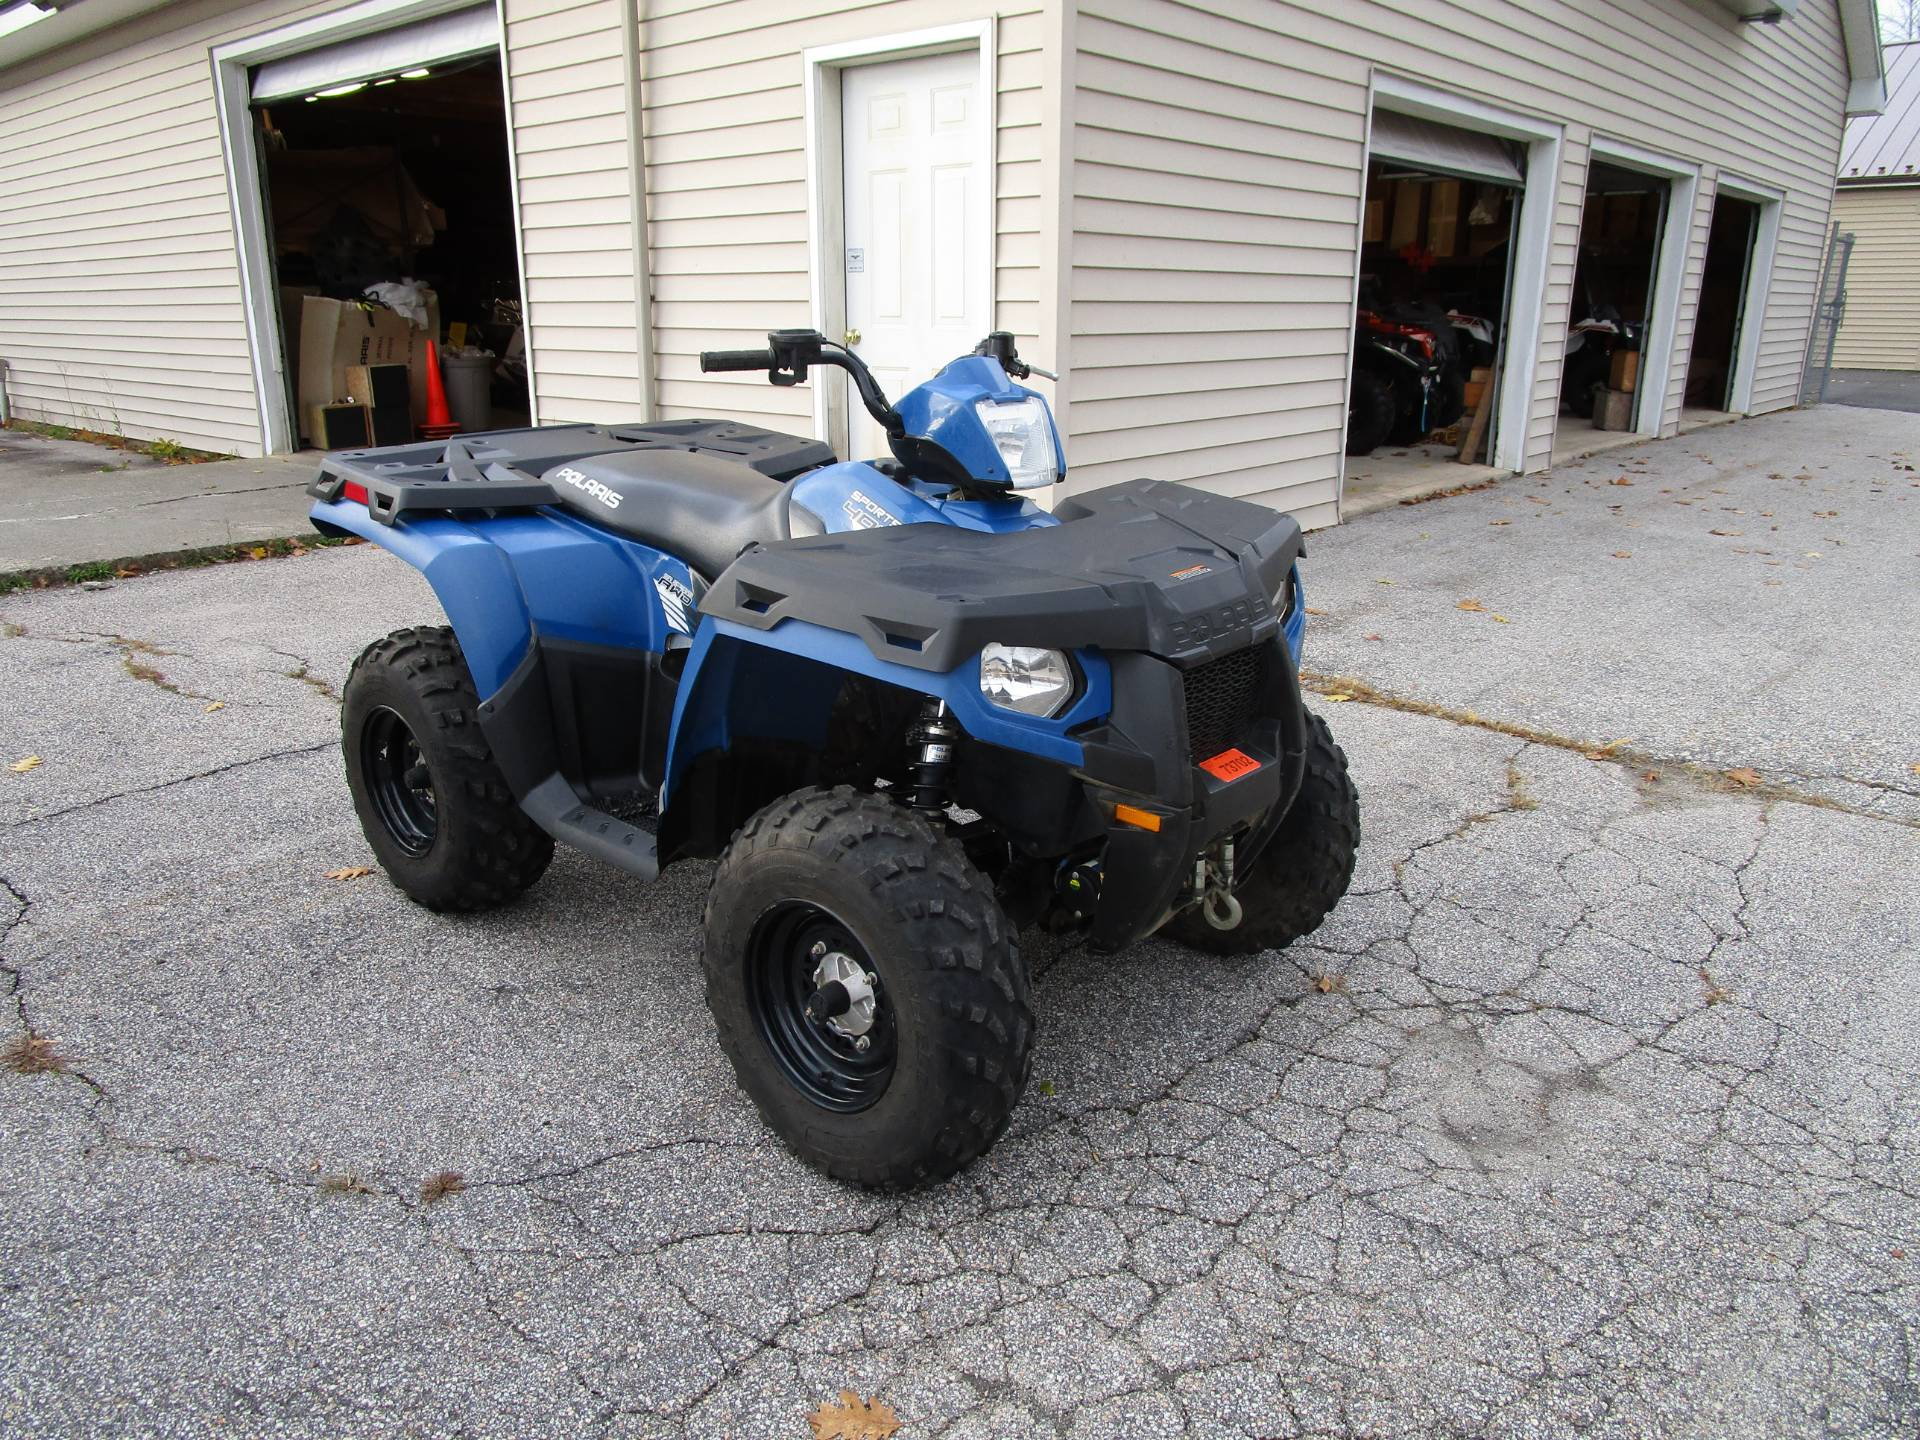 2014 Polaris Sportsman® 400 H.O. in Newport, Maine - Photo 2